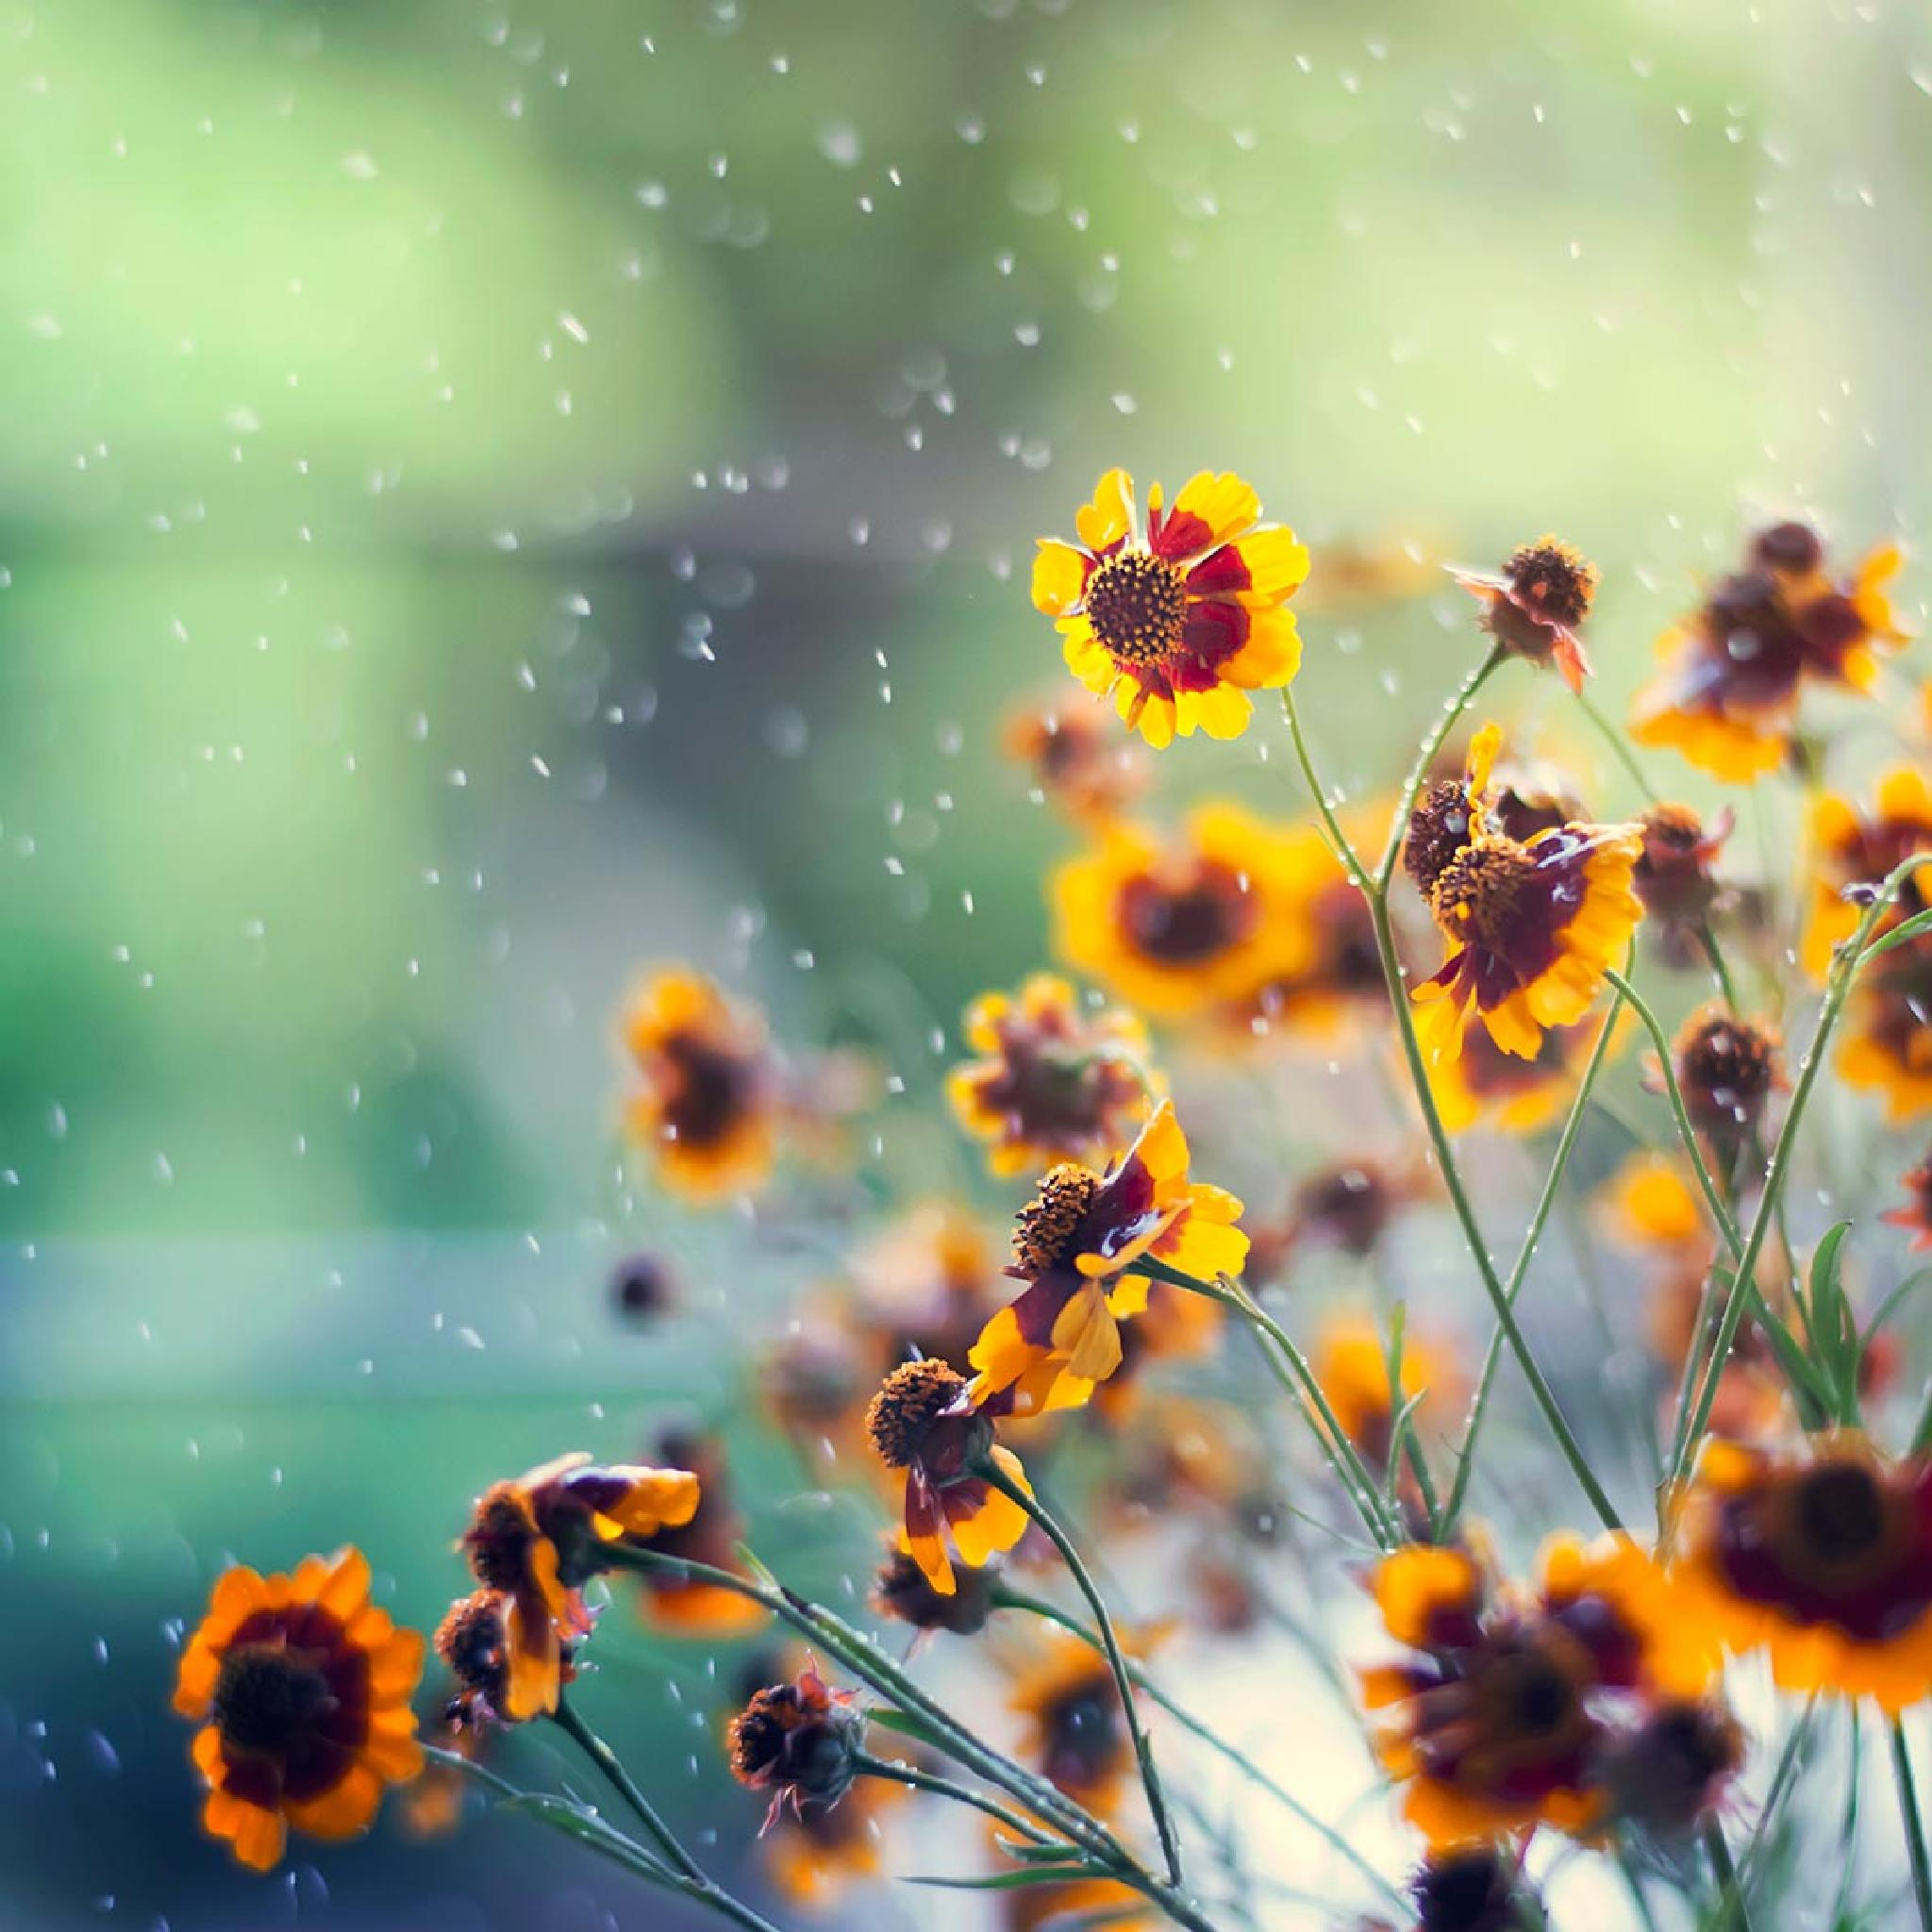 It's a beautiful day by Ashraful Arefin